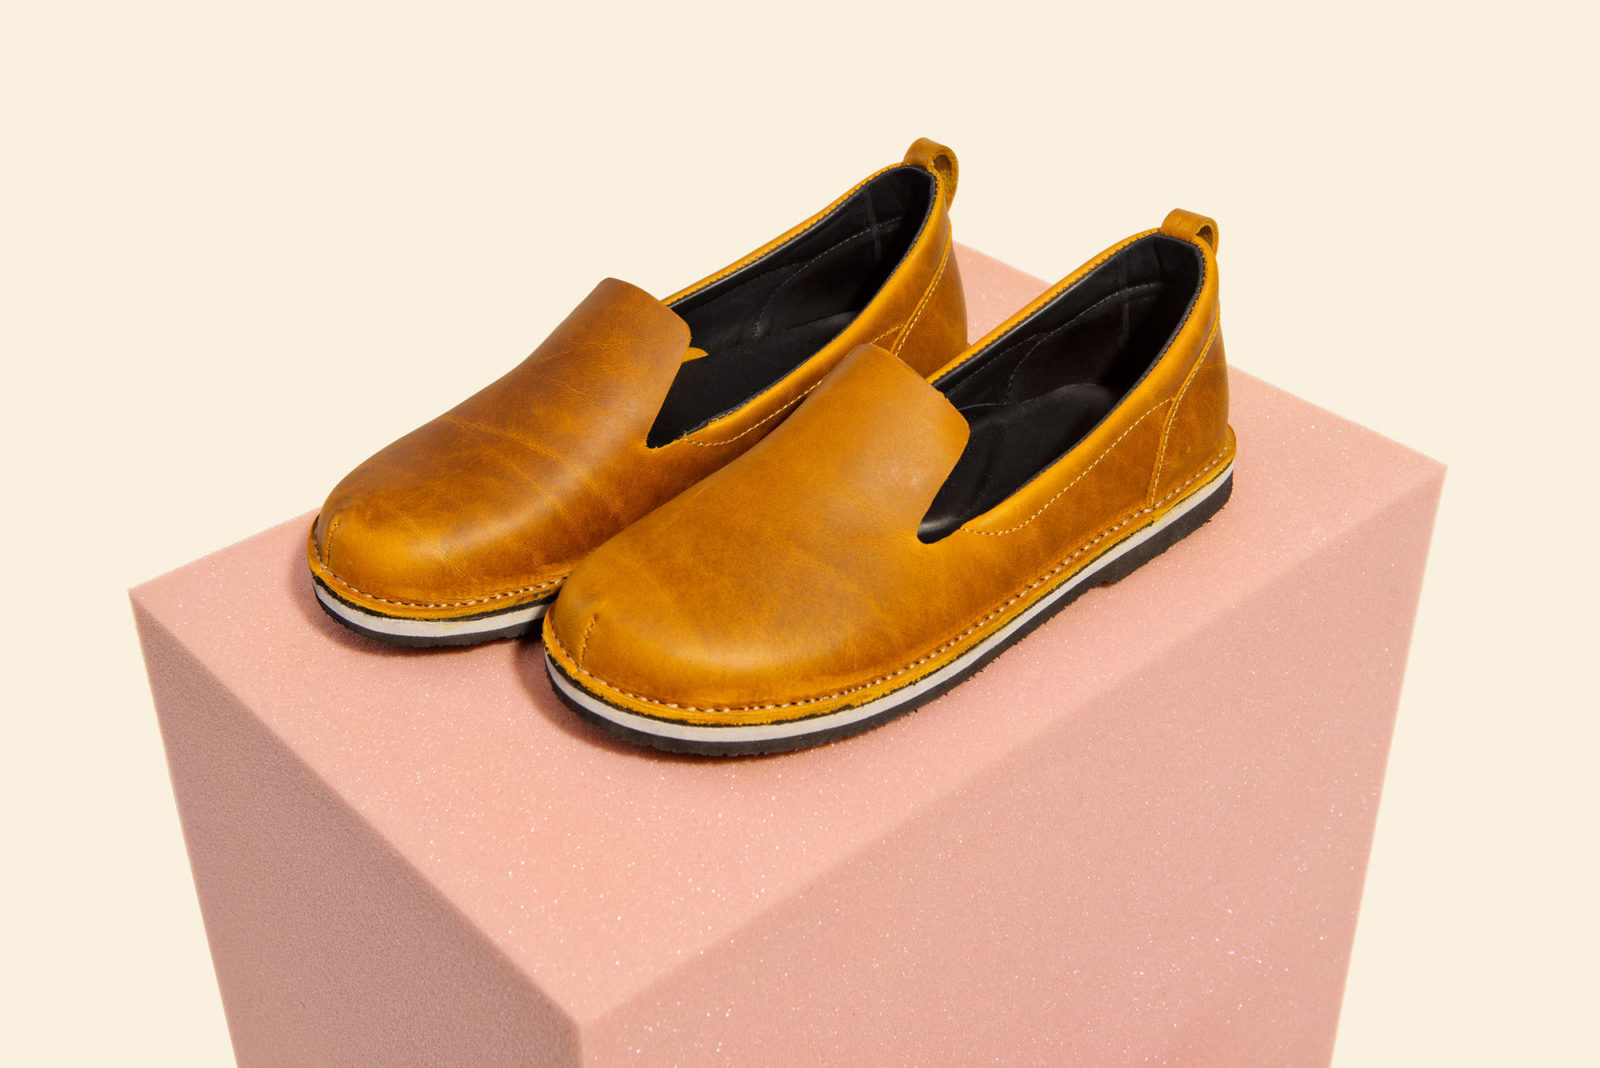 London handmade shoes, small production